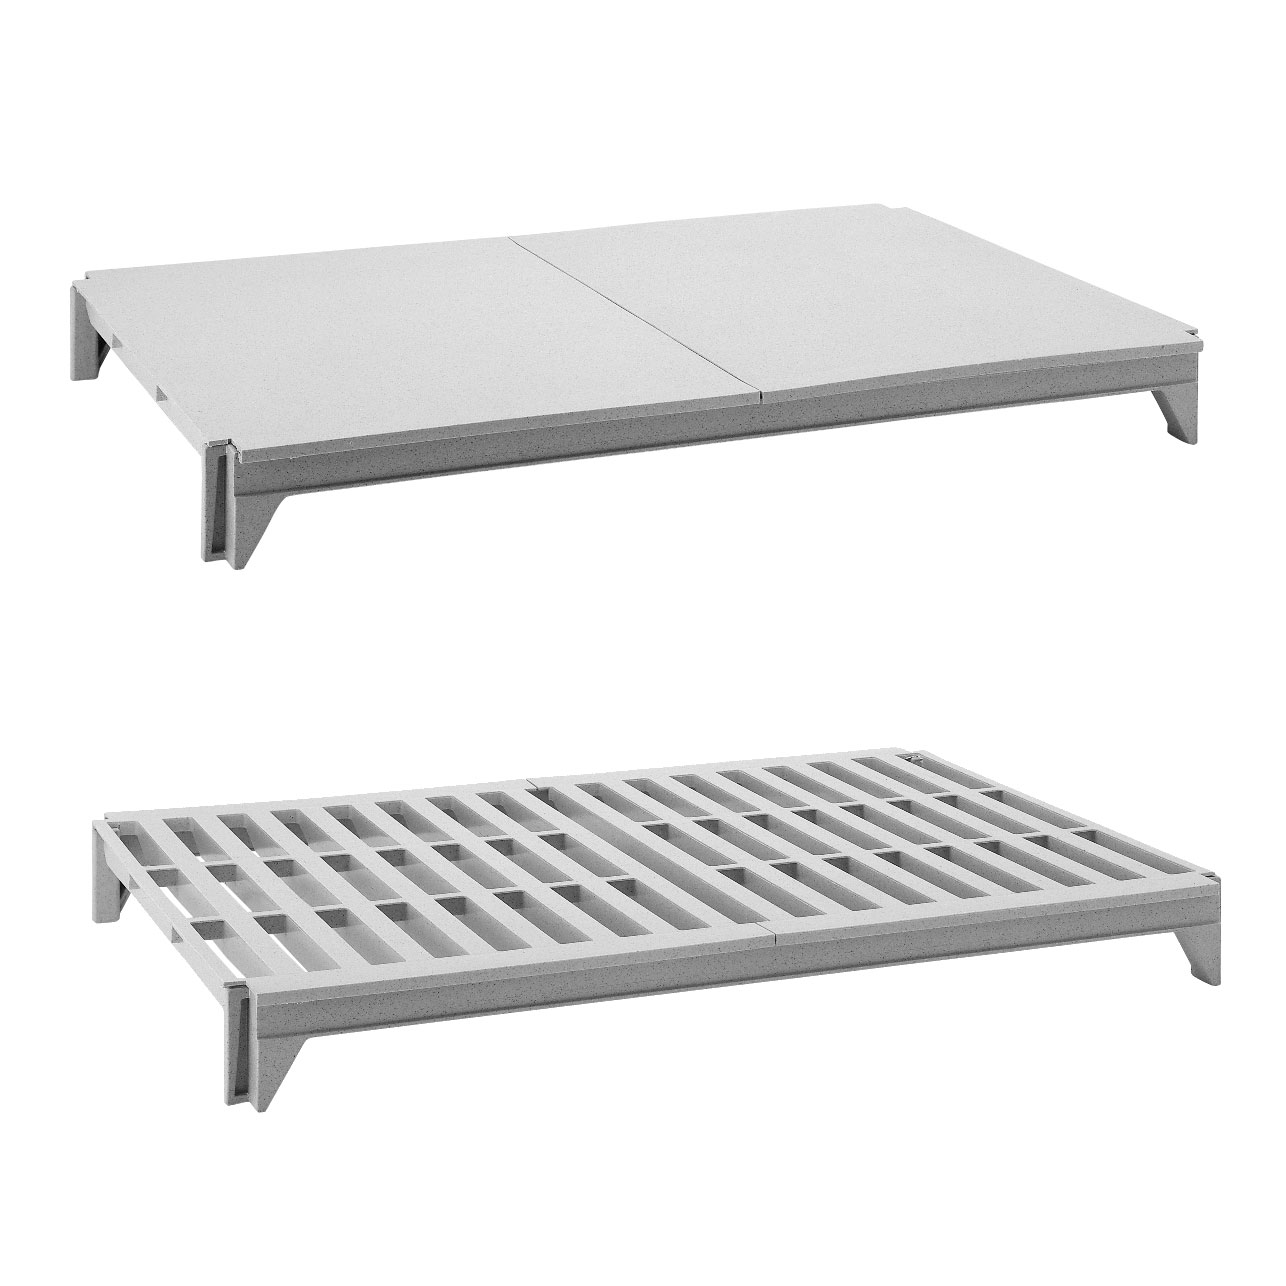 Cambro CPSK2142VS4480 shelving, all plastic